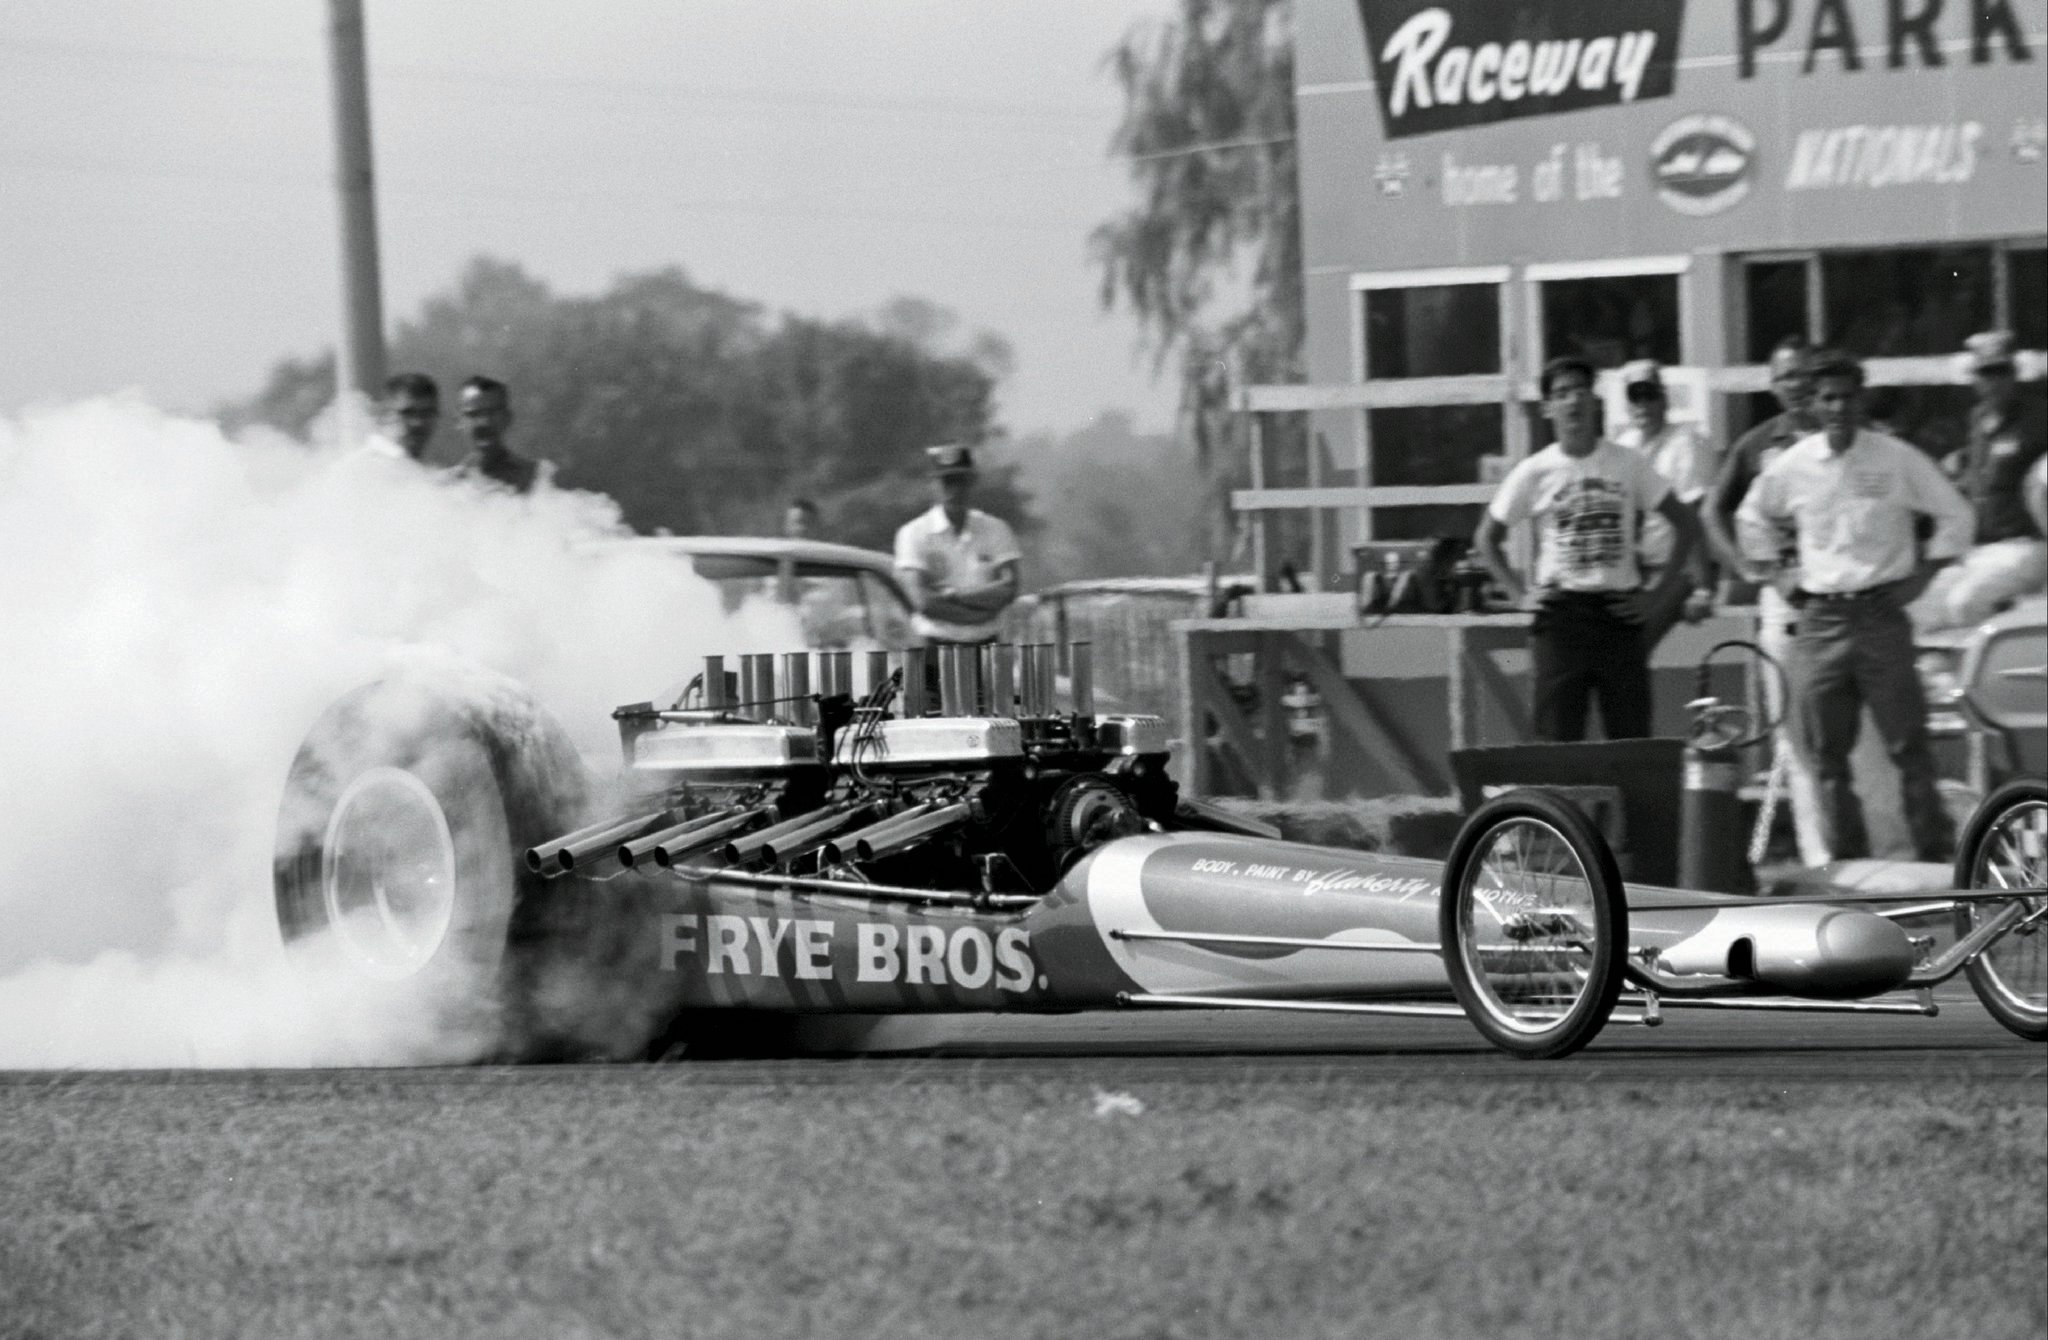 """NHRA's first-ever open fuel show inspired some dual-engined teams to tip the can to their gasoline combinations. Hellacious tire smoke indicates that the Frye brothers' twin Buicks took an immediate liking to """"liquid horsepower"""" at Indy, though we wonder how long their nailheads survived after the shutter was snapped. The crowd-pleasing combination failed to qualify for a Top Fuel field ultimately topped by Don Garlits."""